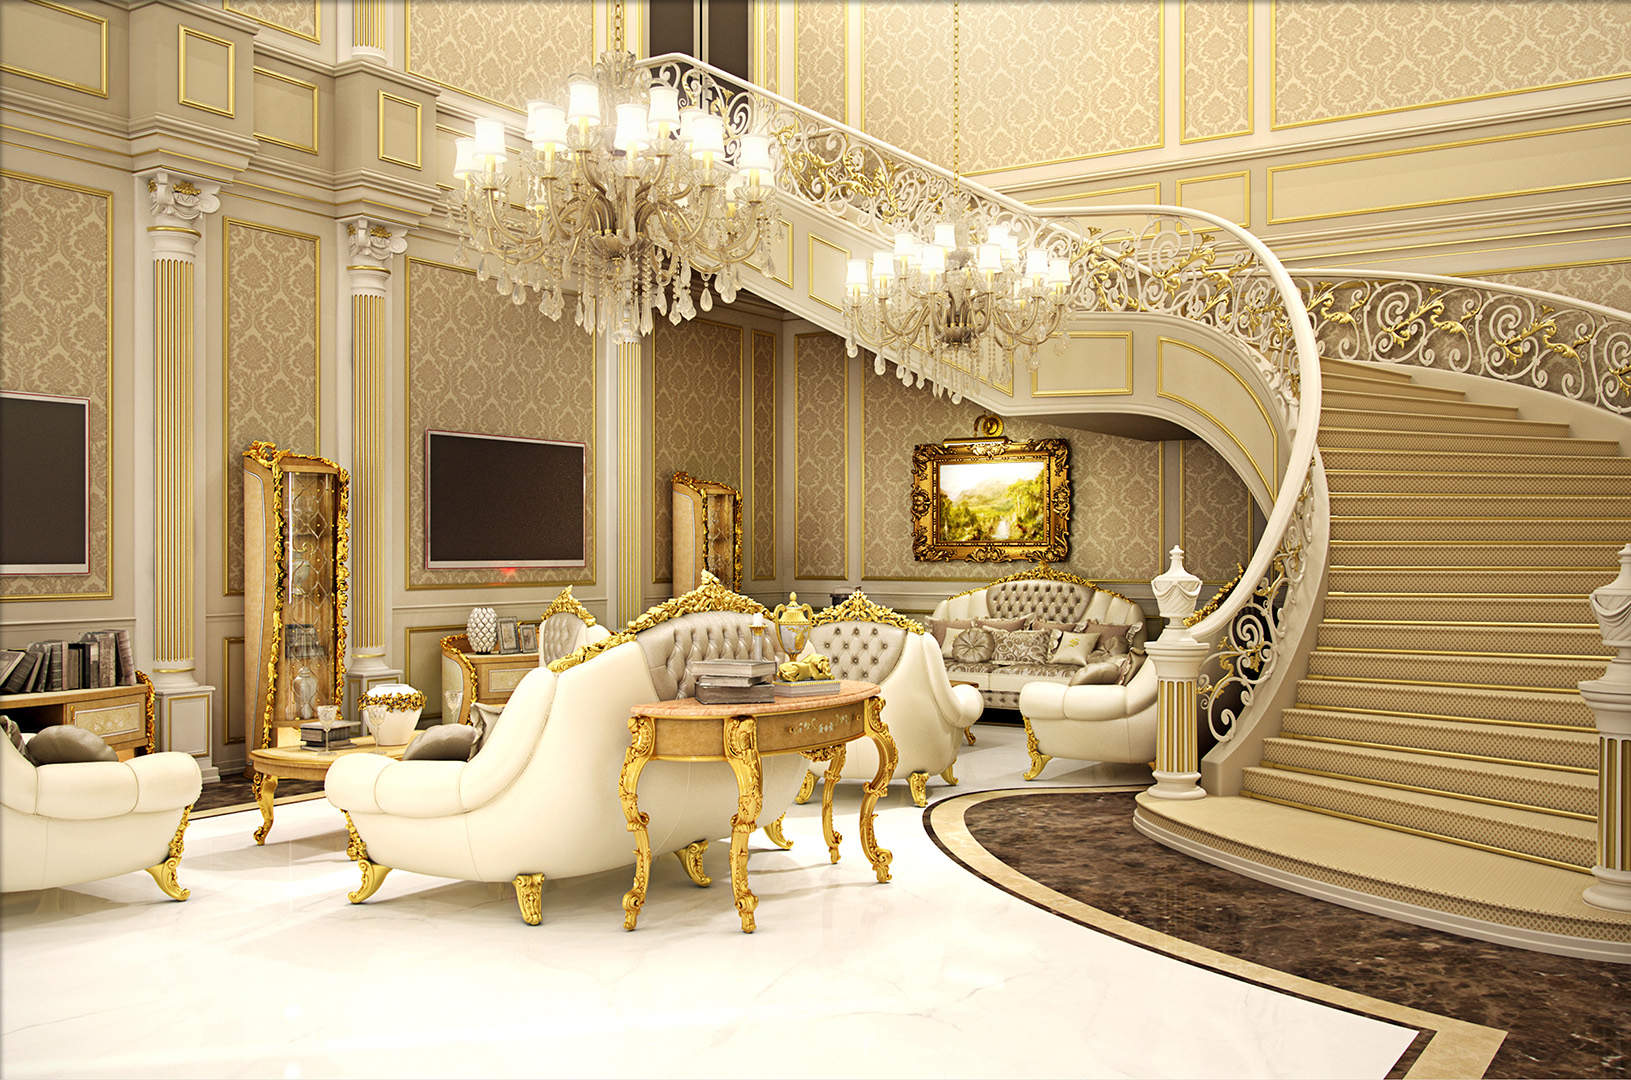 15-310 Entrance Living room RENDER1 15 06 2015